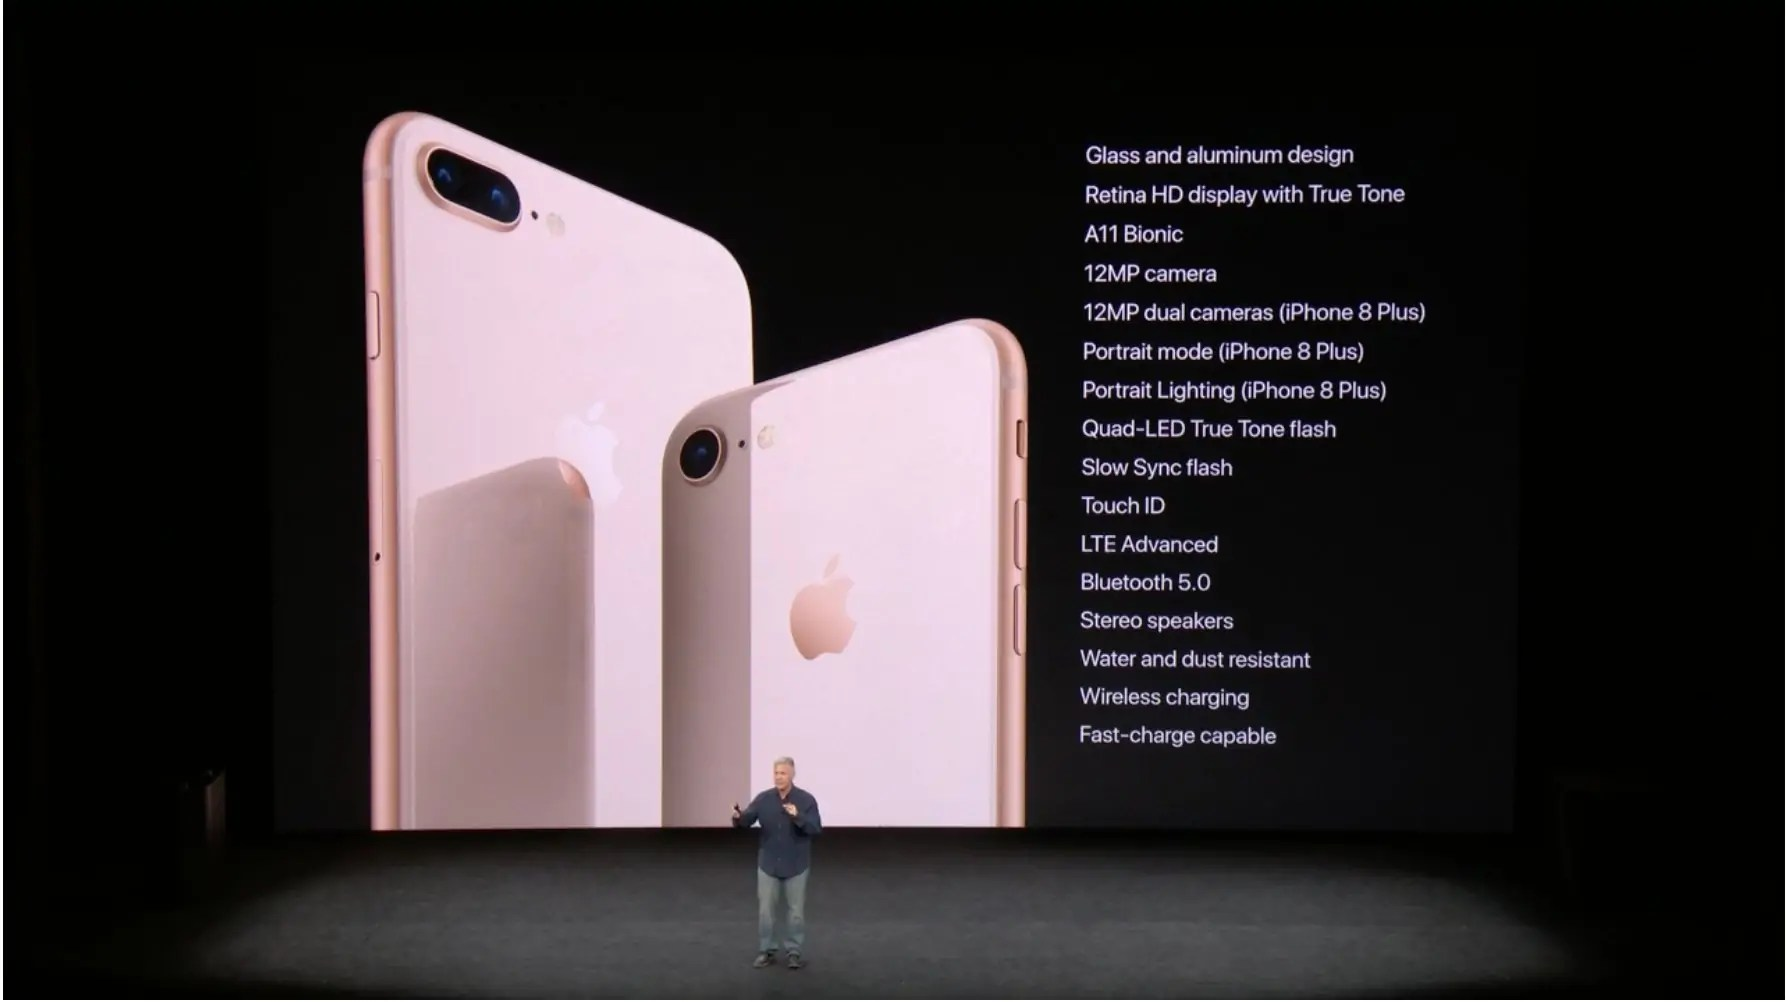 And Both The Devices Runs On IOS 11 Out Of Box Phones Will Be Available In Four Colour Options Space Grey Silver New Gold No Jet Black This